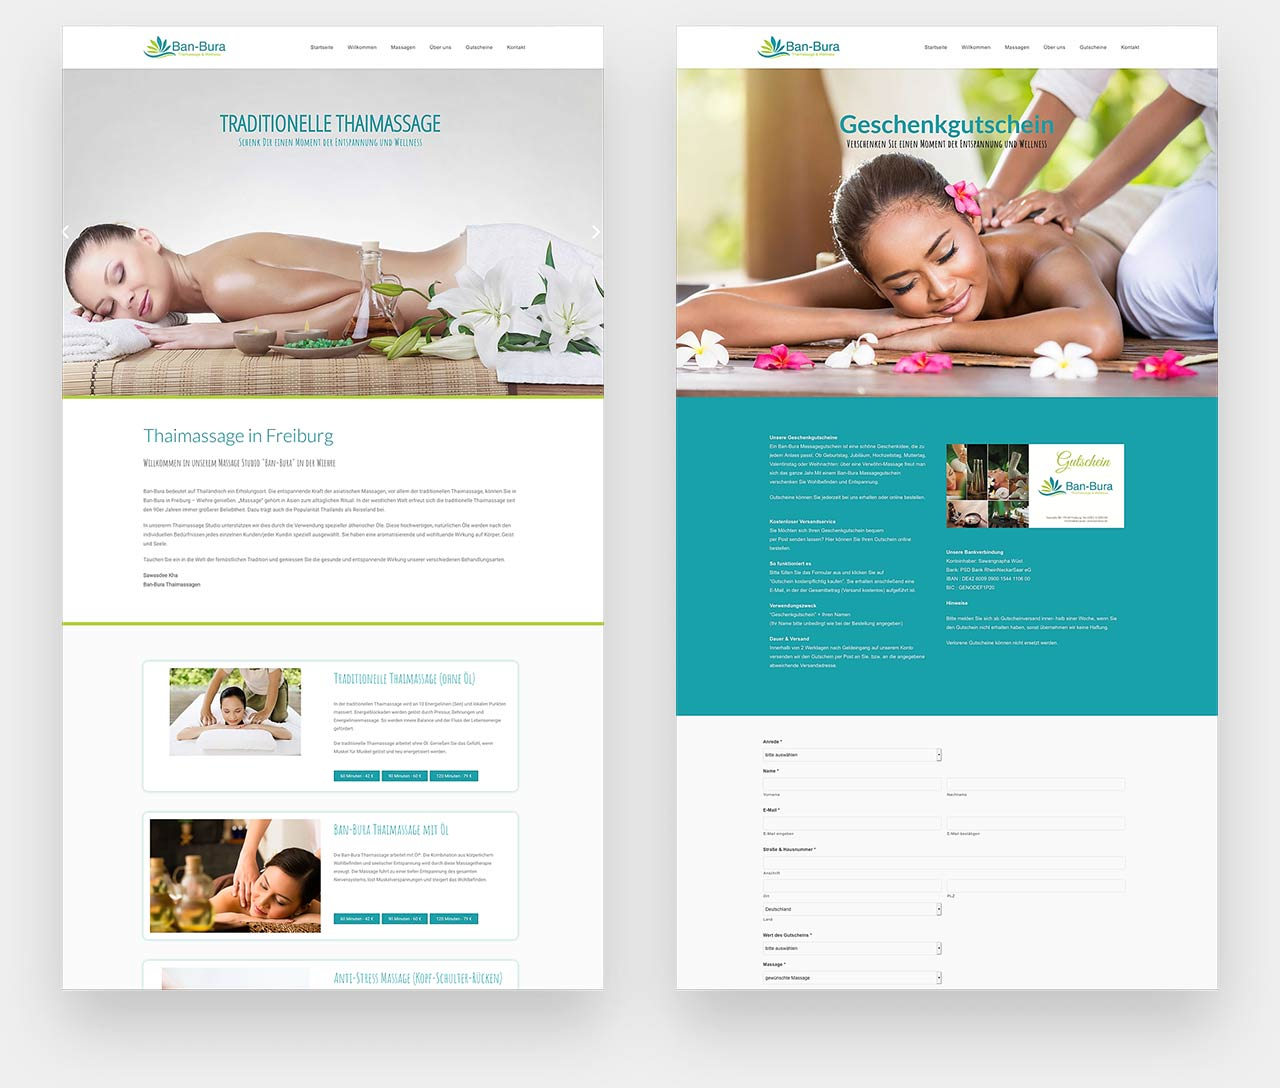 Webdesign Thaimassage Freiburg Banbura